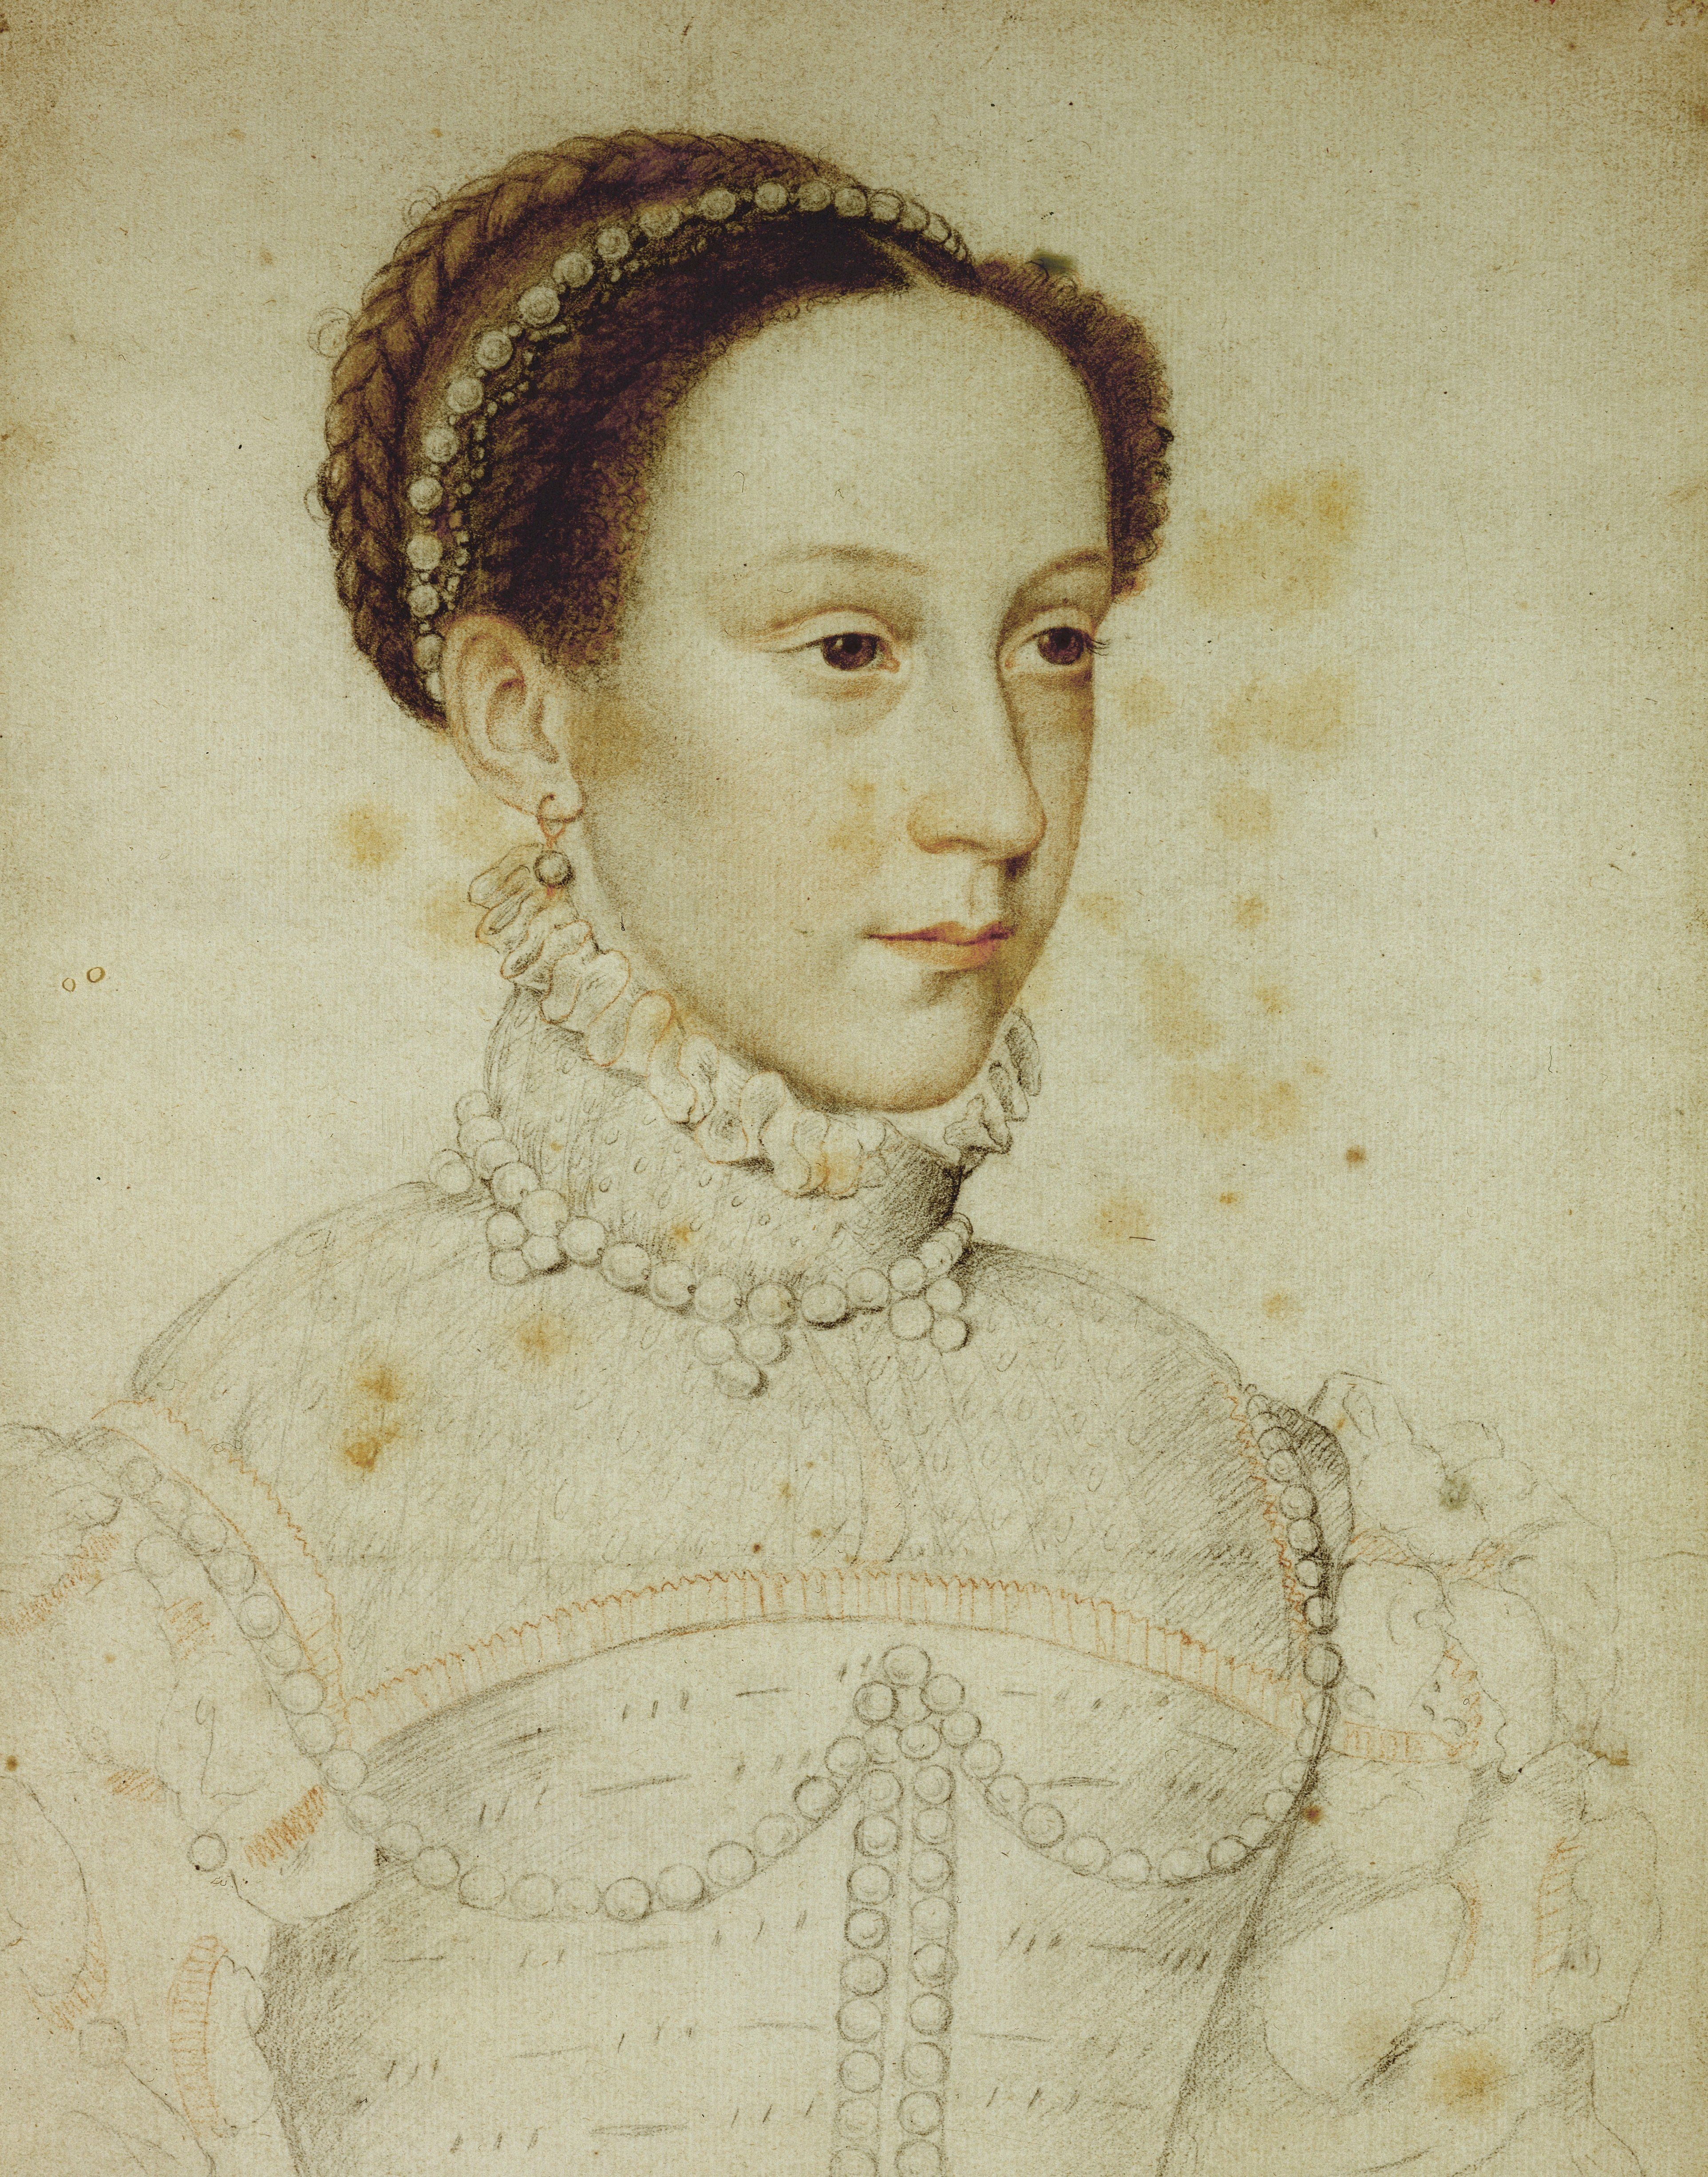 <strong>Mary Stuart, Queen of the Scots, by Jean Clouet, 1559</strong>